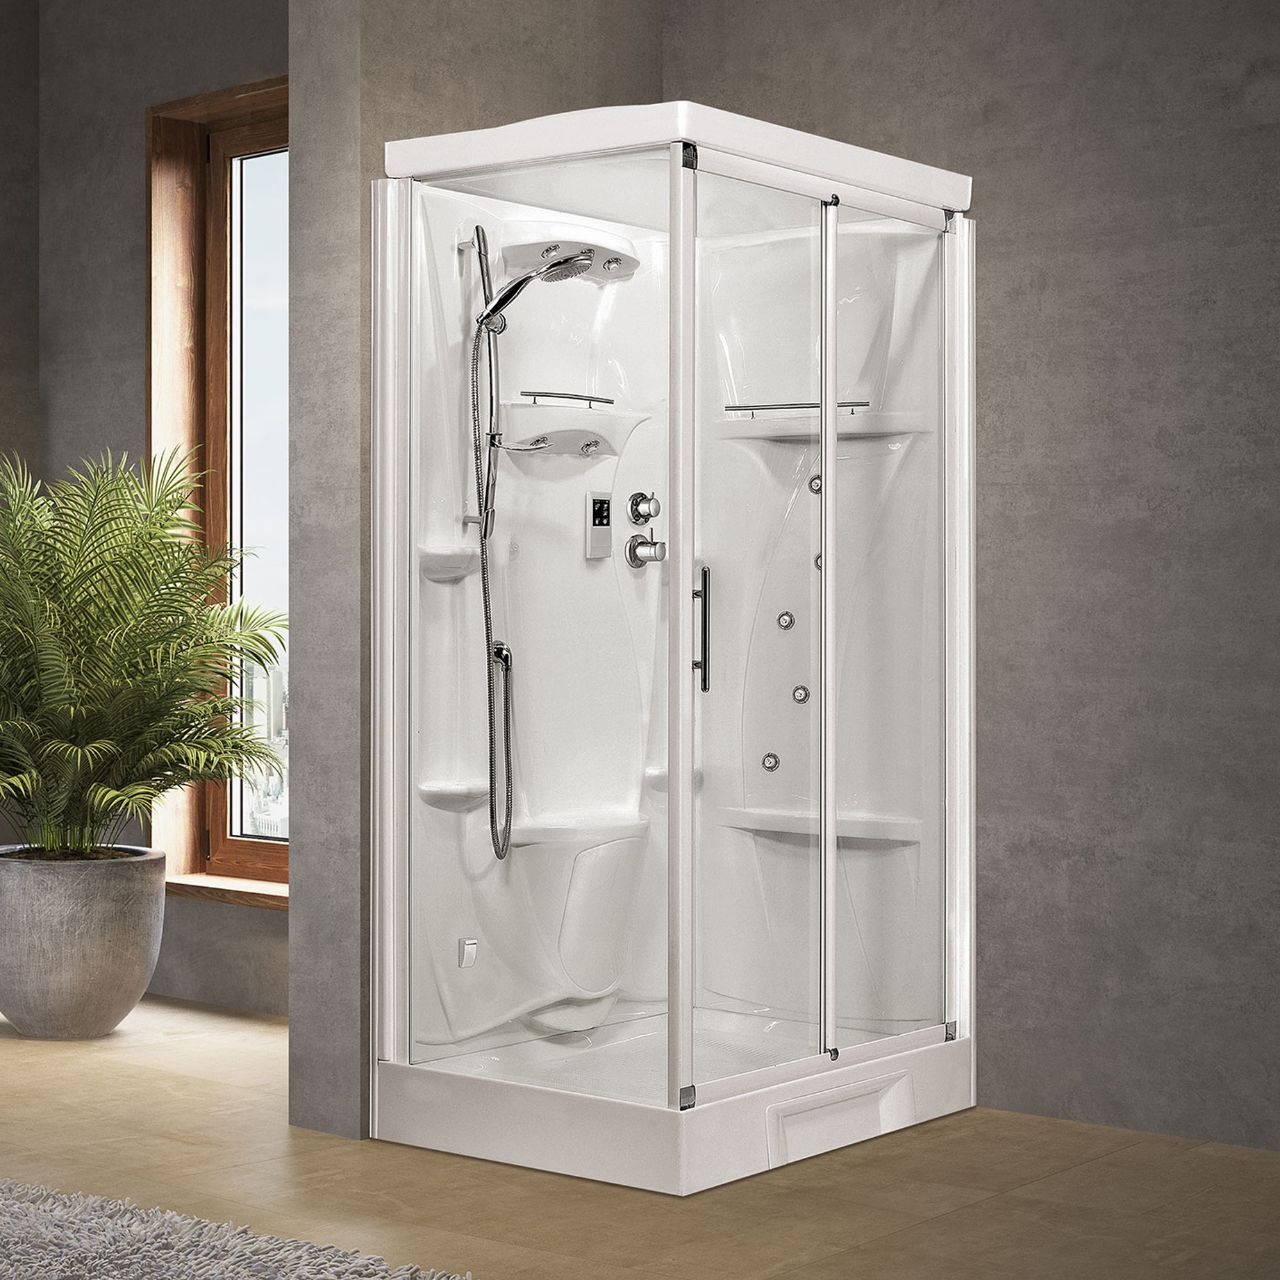 shower cubicles new holiday 2p120x80 novellini. Black Bedroom Furniture Sets. Home Design Ideas